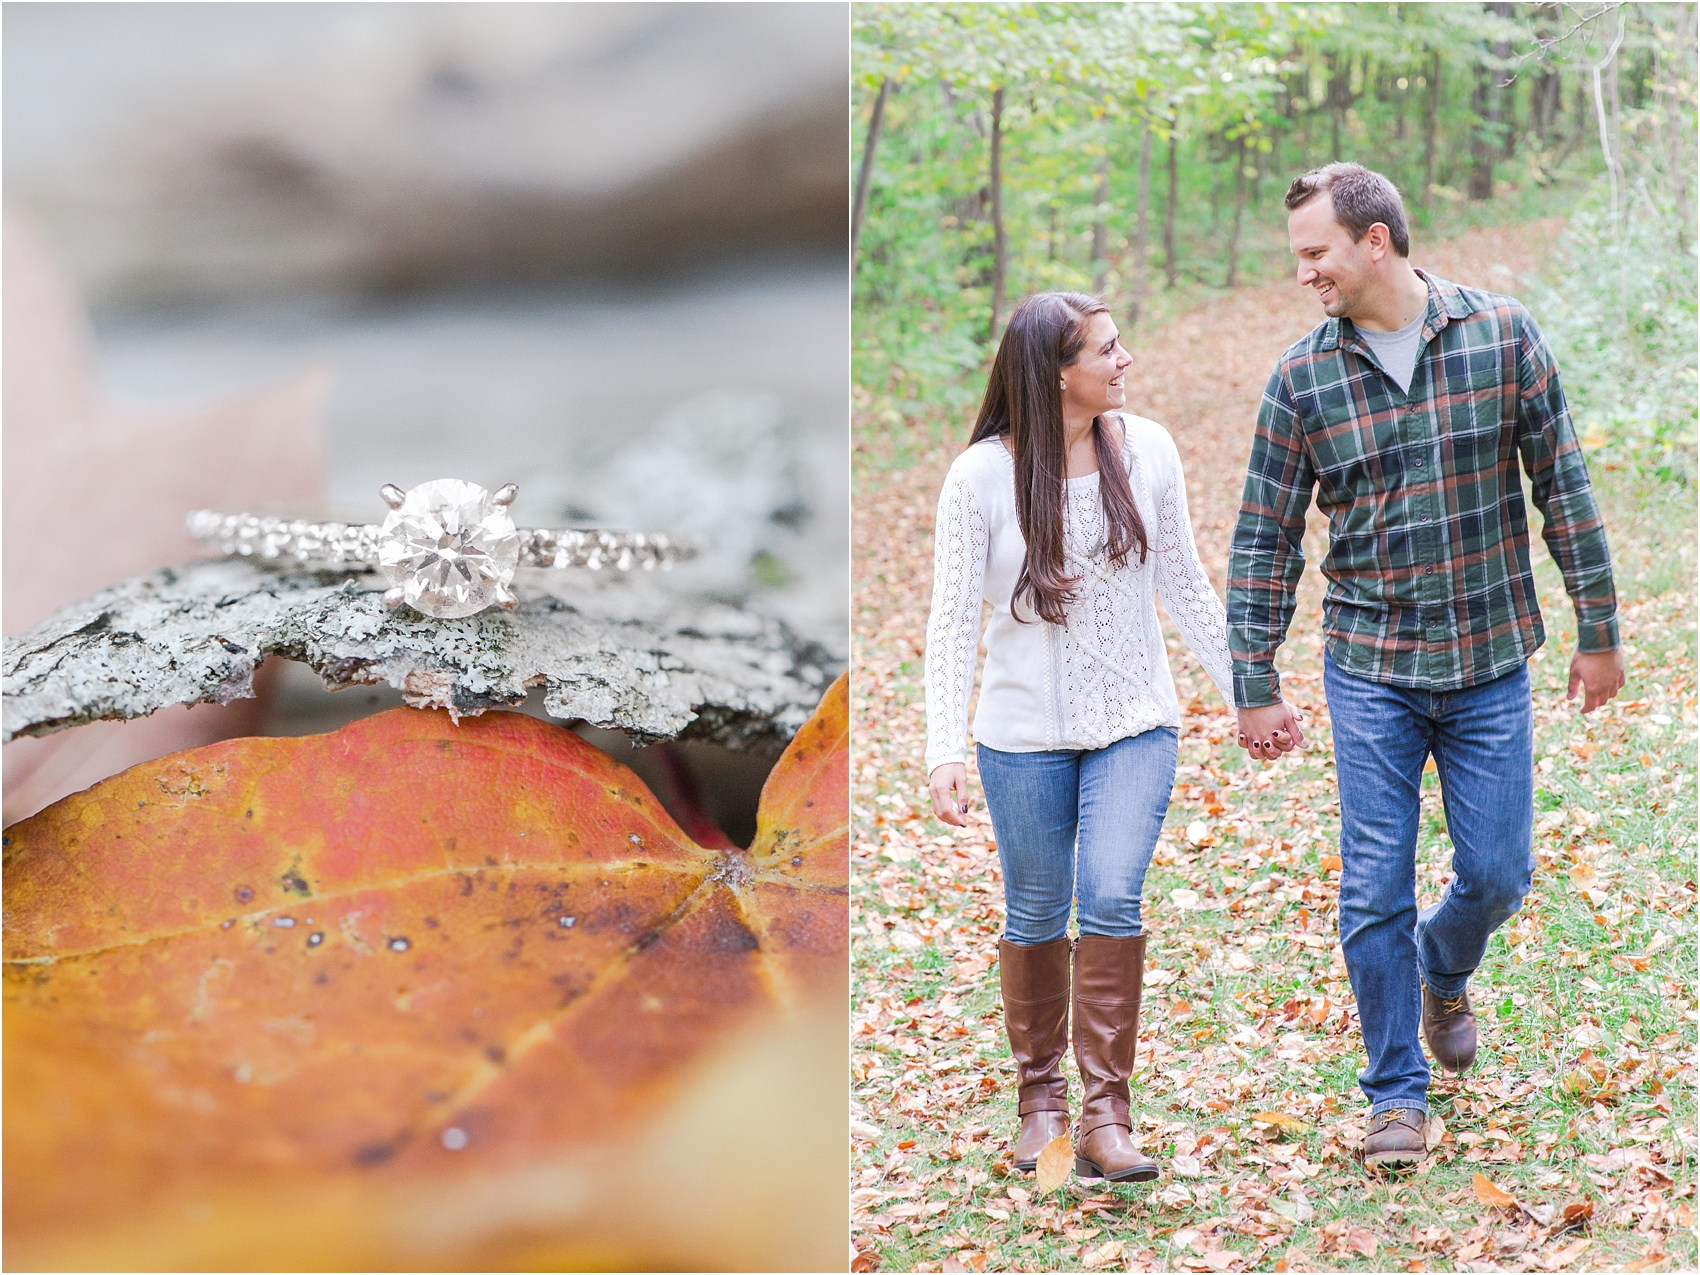 emotional-candid-romantic-engagement-photos-in-detroit-chicago-northern-michigan-by-courtney-carolyn-photography_0010.jpg